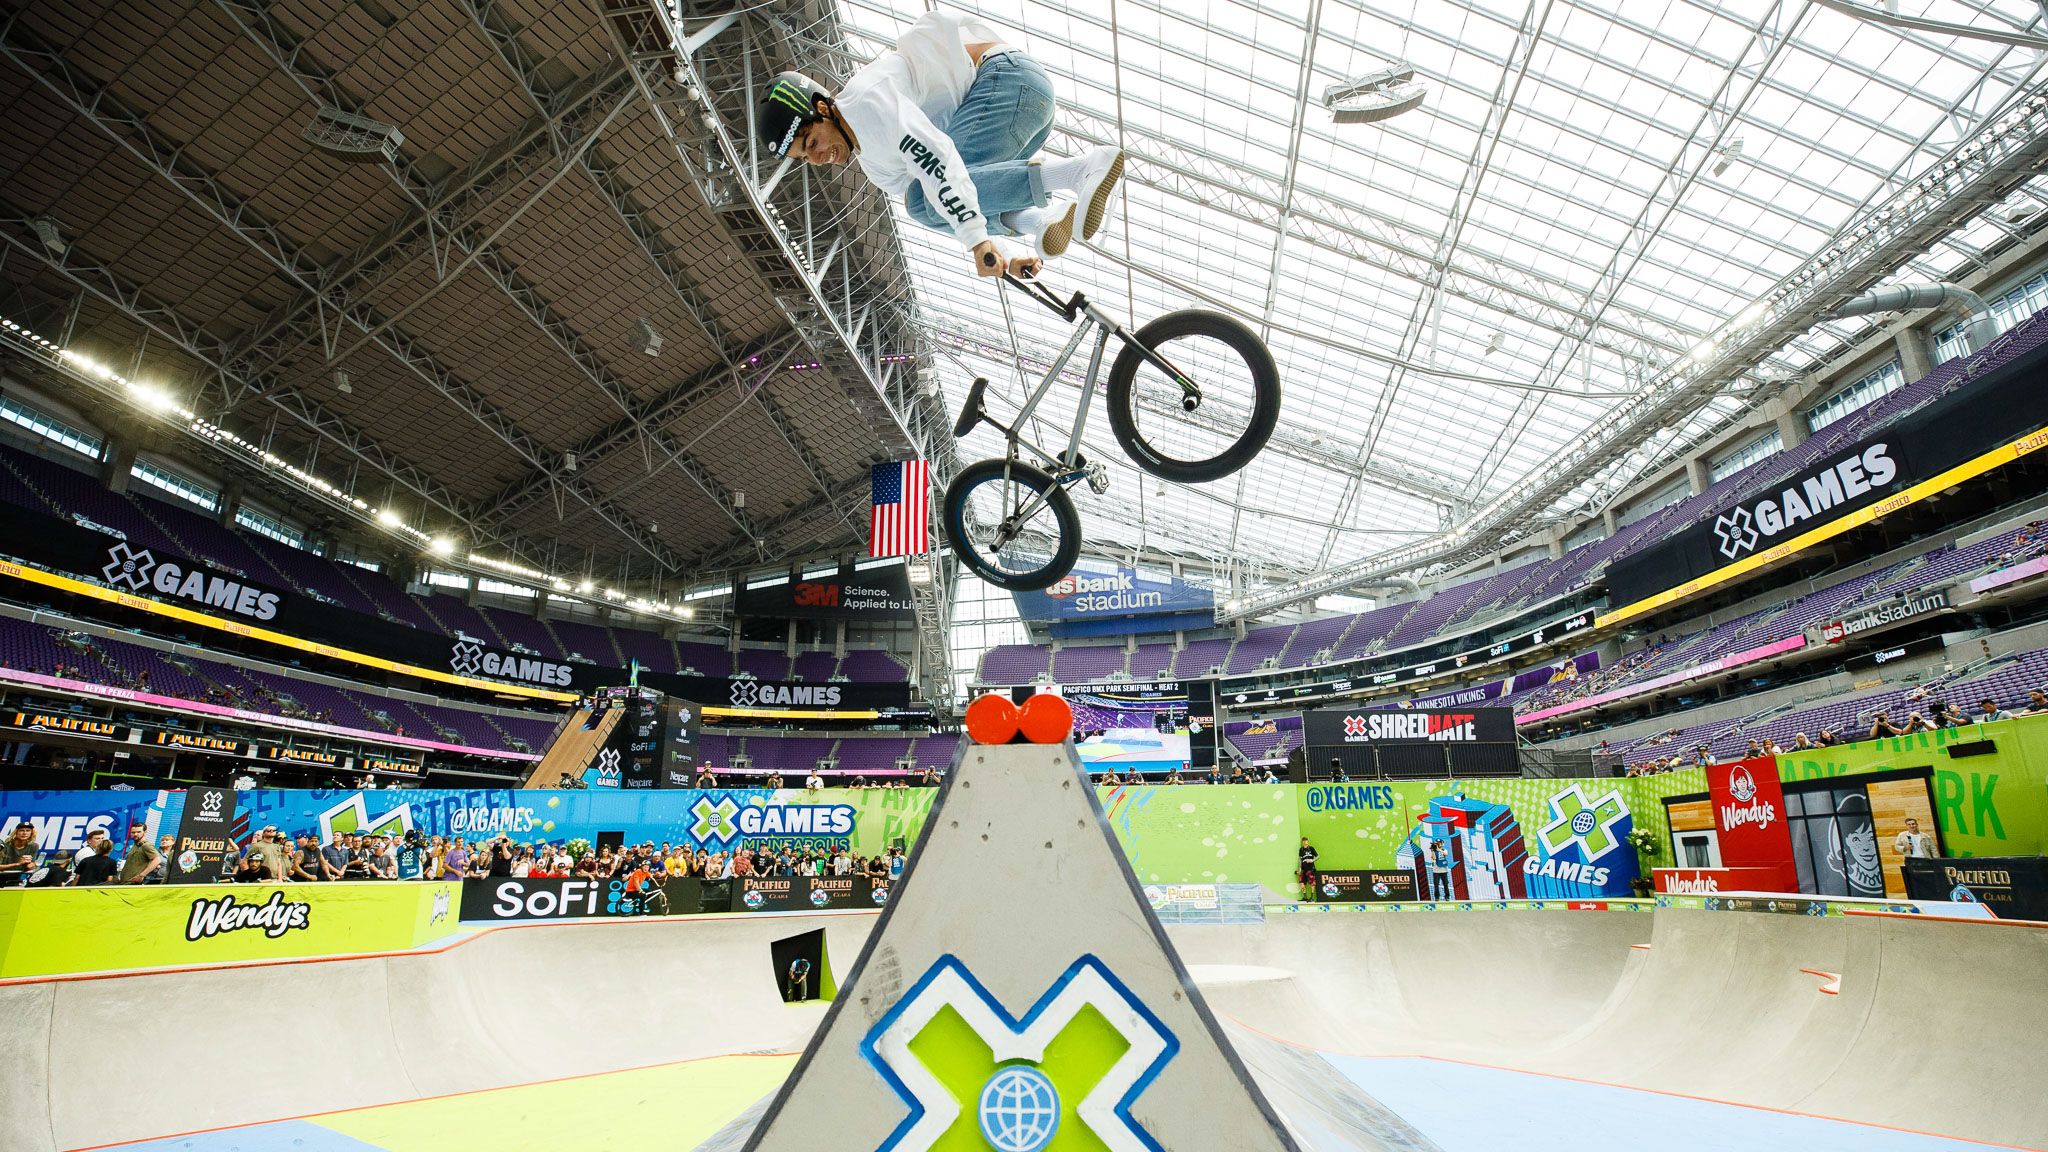 X Games just wrapped the third year in its new summer home of Minneapolis. Submitted for your approval are the best images and moments from the 2019 event here in this gallery. Click on to see all the photo highlights ...